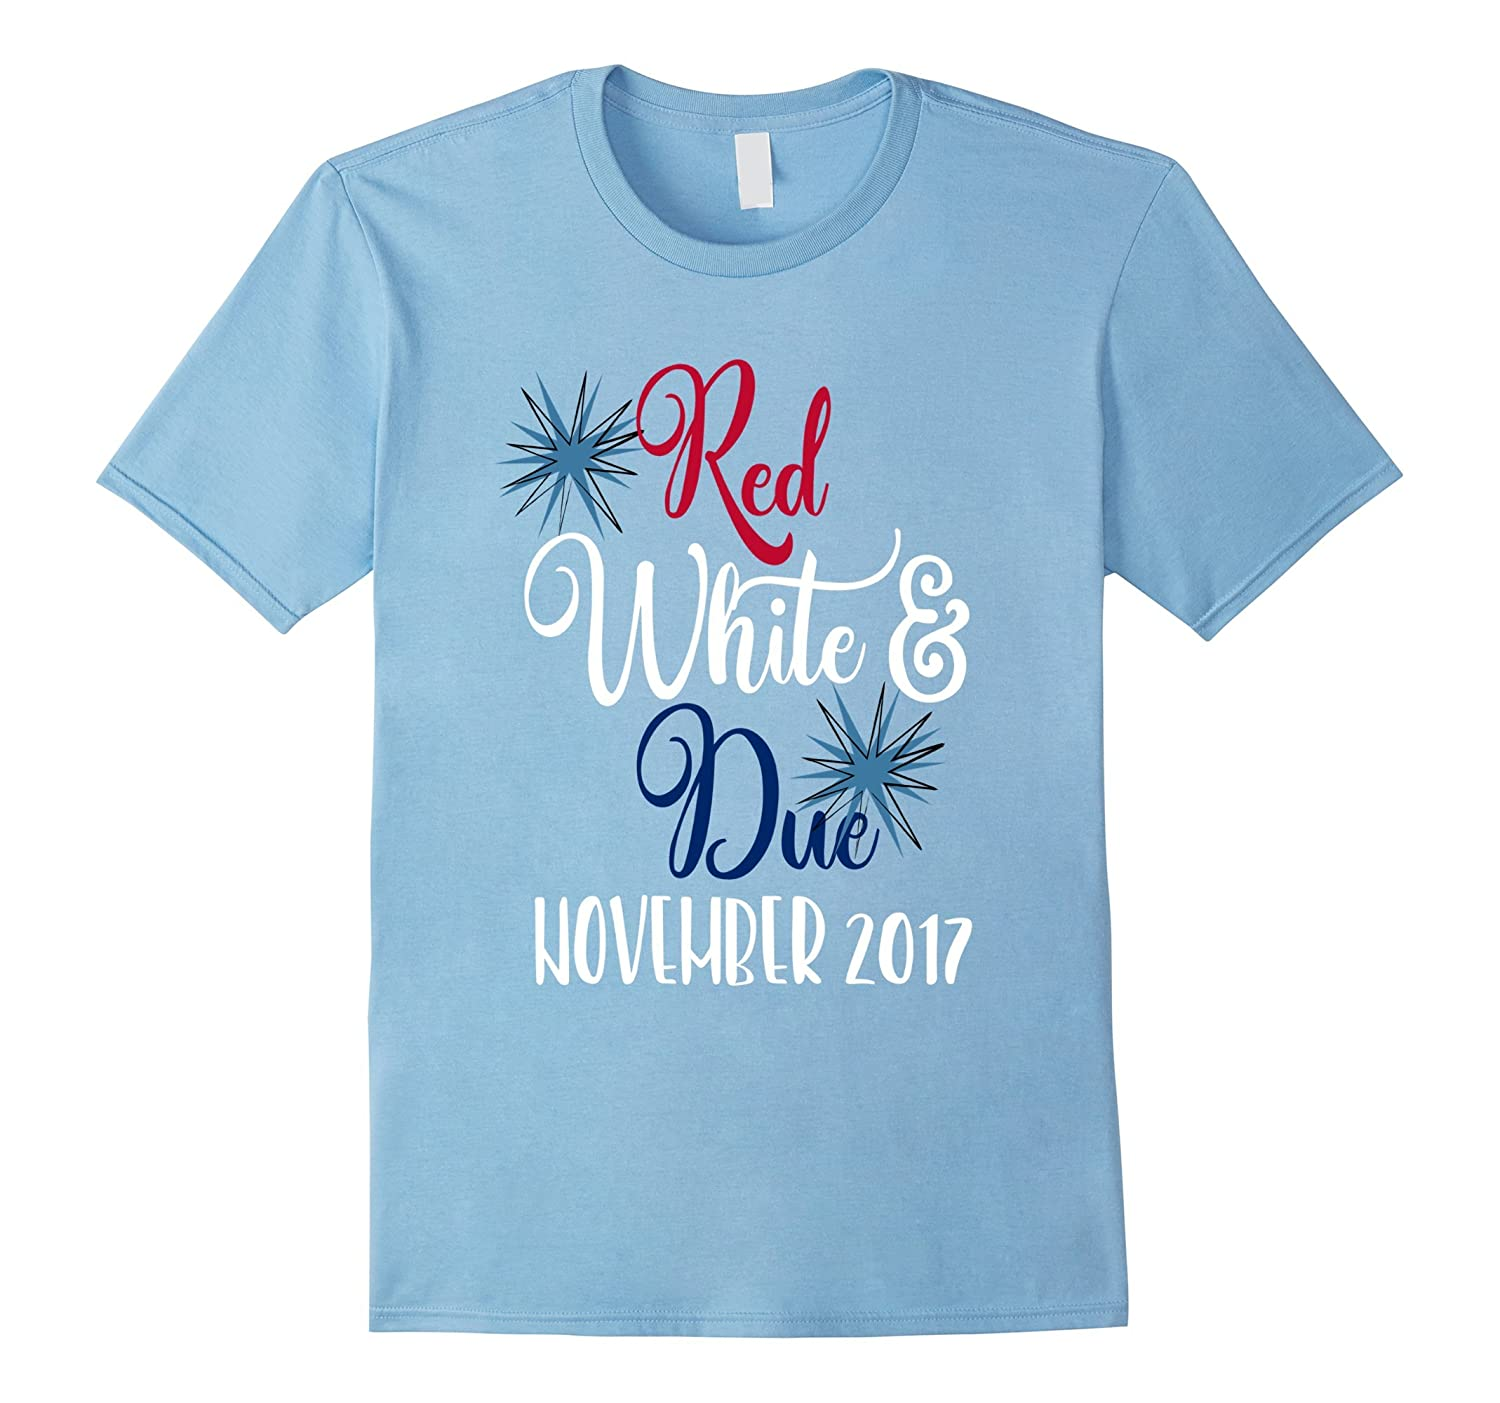 July 4th Maternity Shirt Red White  Due November 2017-PL